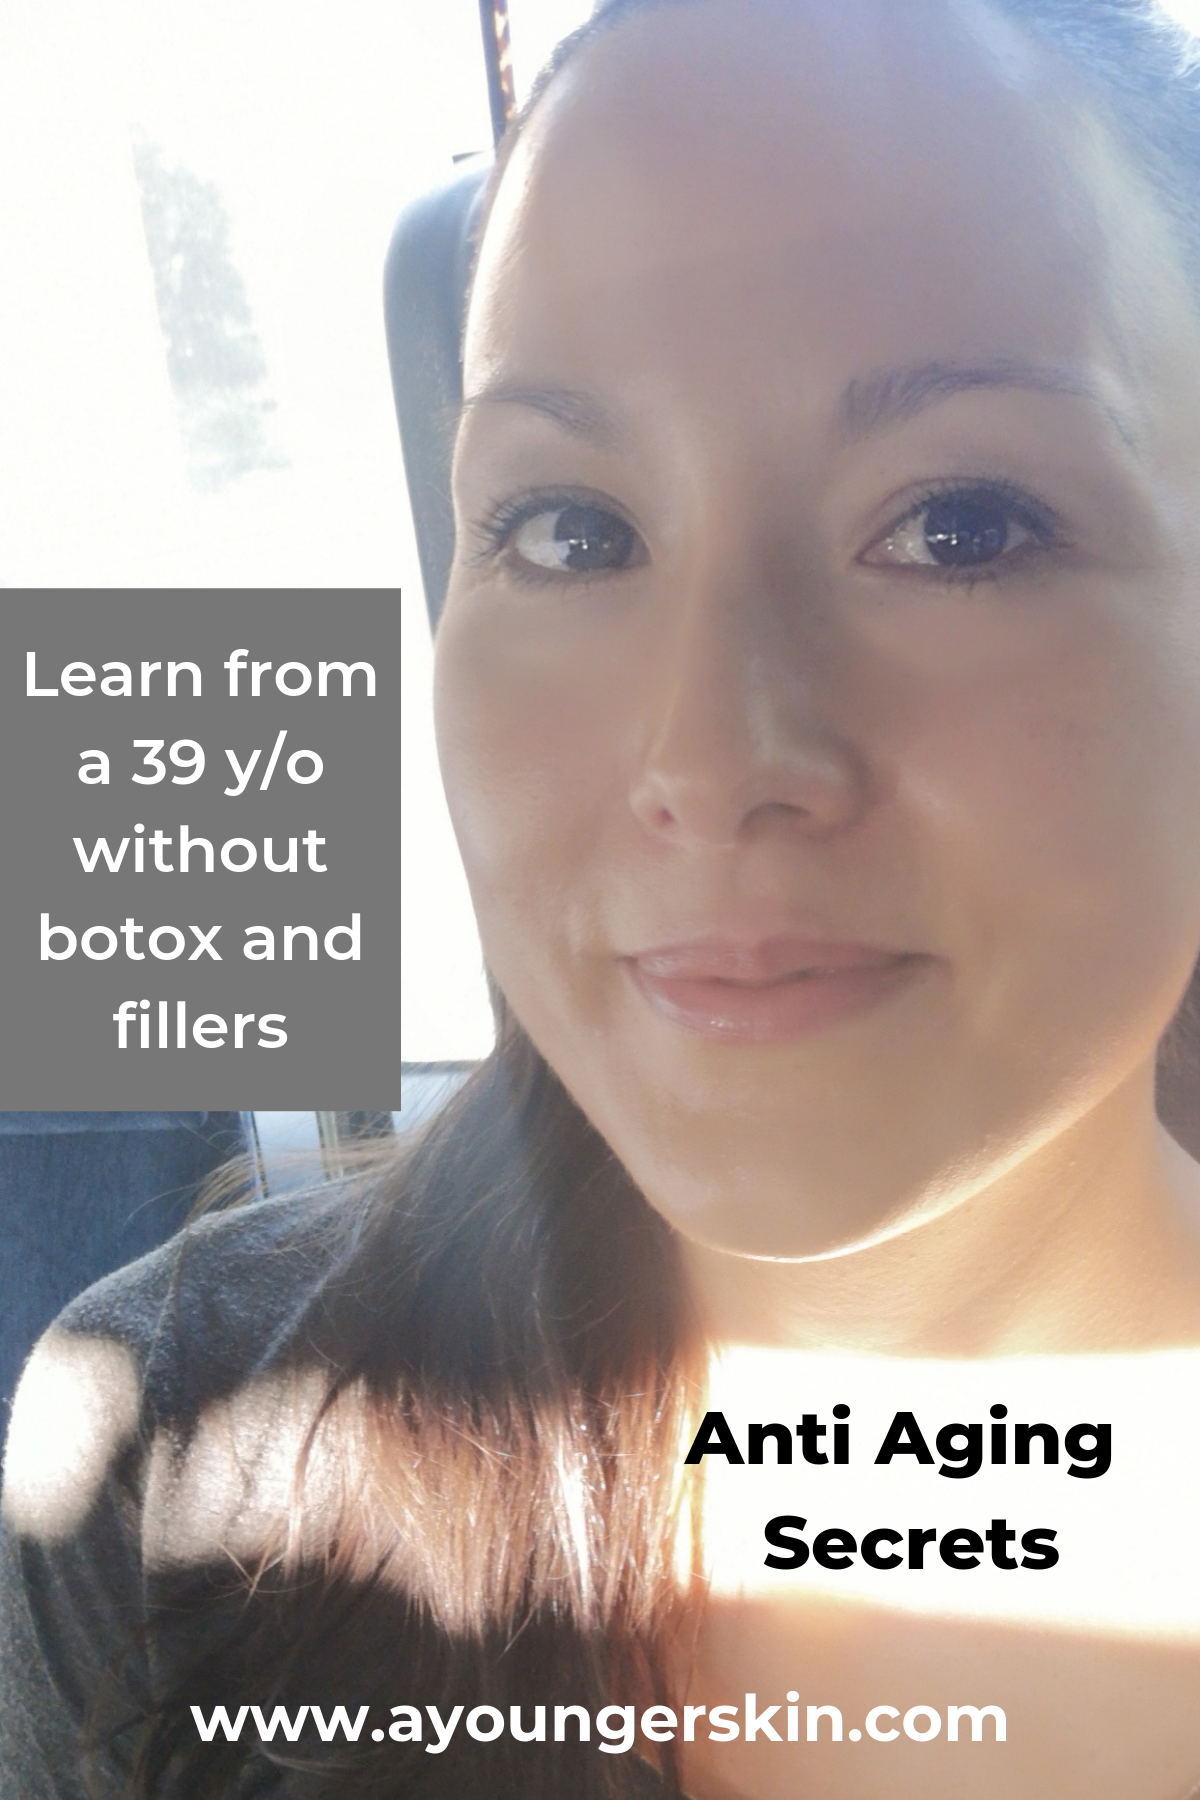 Anti Aging Secrets From A 39 Year Old Without Botox And Fillers Anti Aging Secrets Younger Skin Naturally Younger Skin